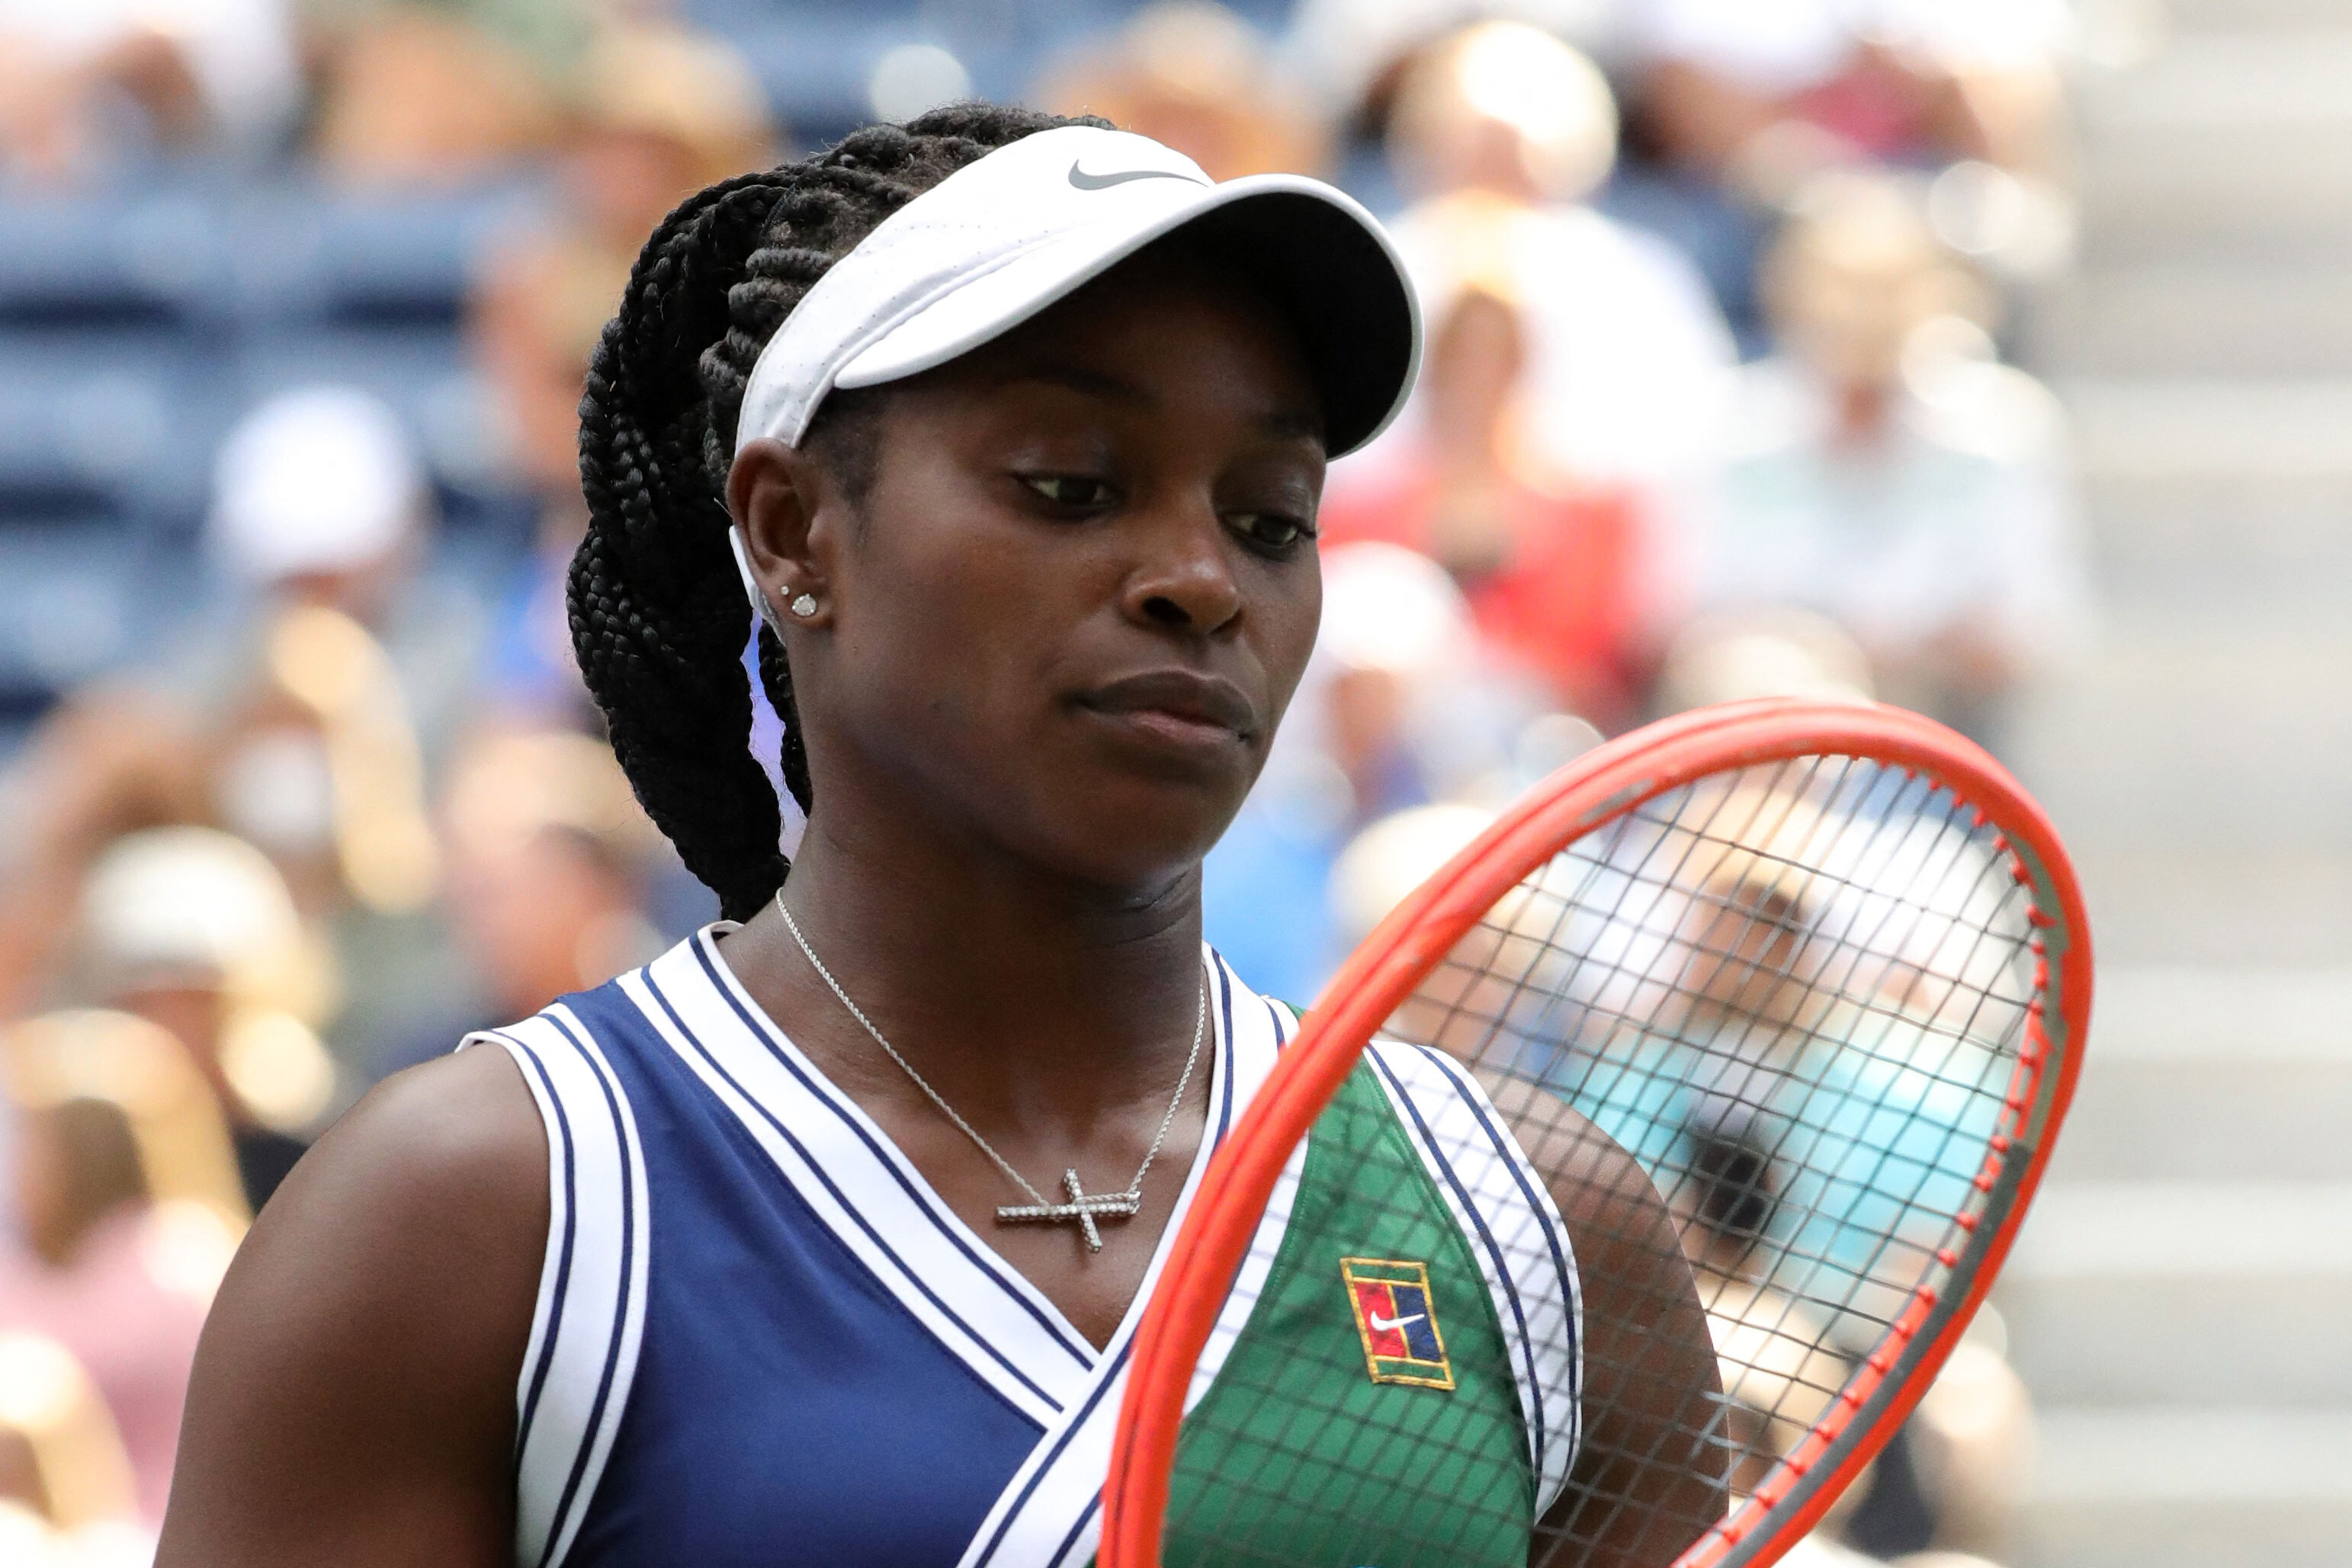 Sloane Stephens says she received more than 2,000 messages of 'abuse and anger' after US Open defeat